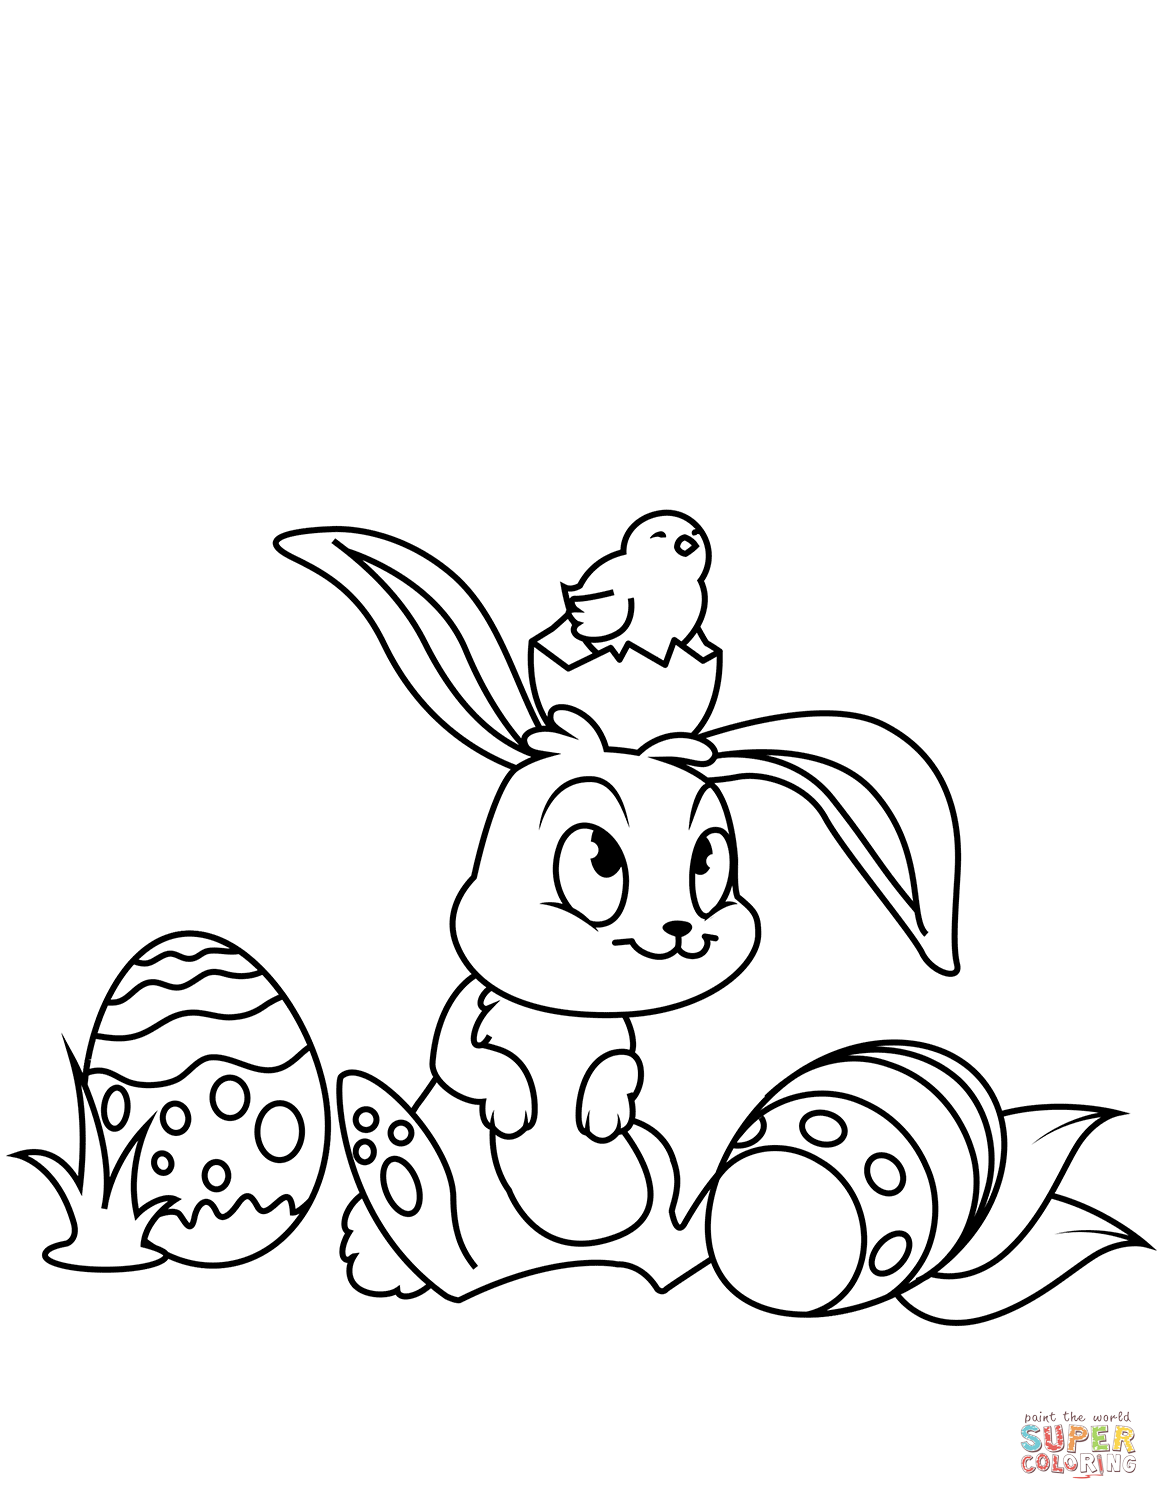 Cute Easter Bunny And Chick Coloring Page